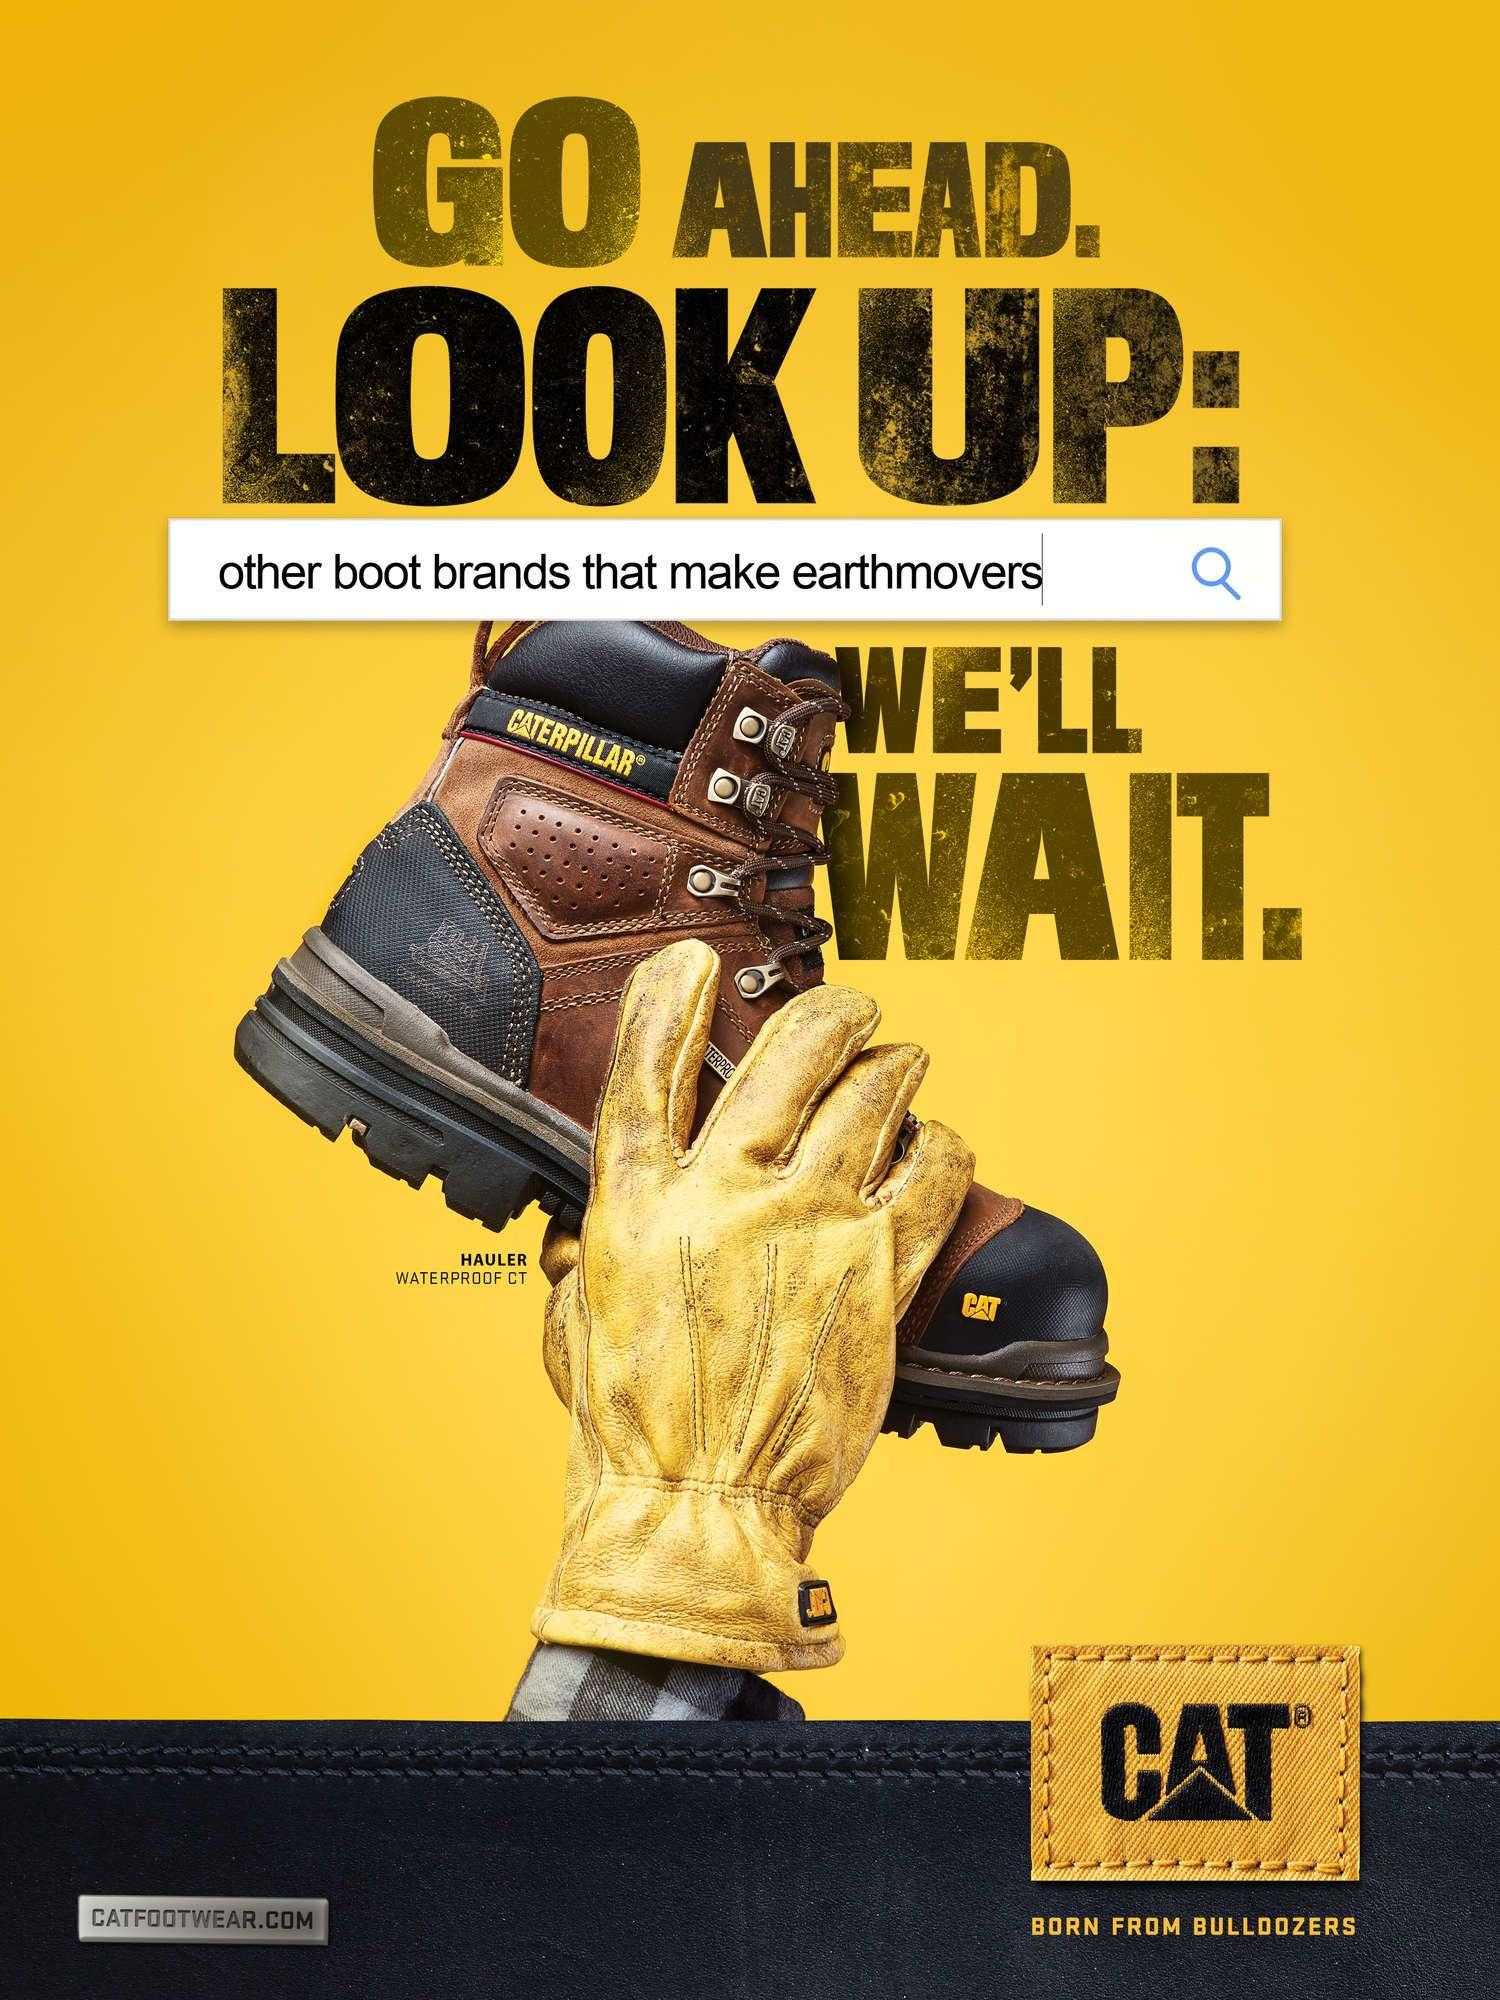 Cat Footwear Print Ad - Go Ahead. Look Up.